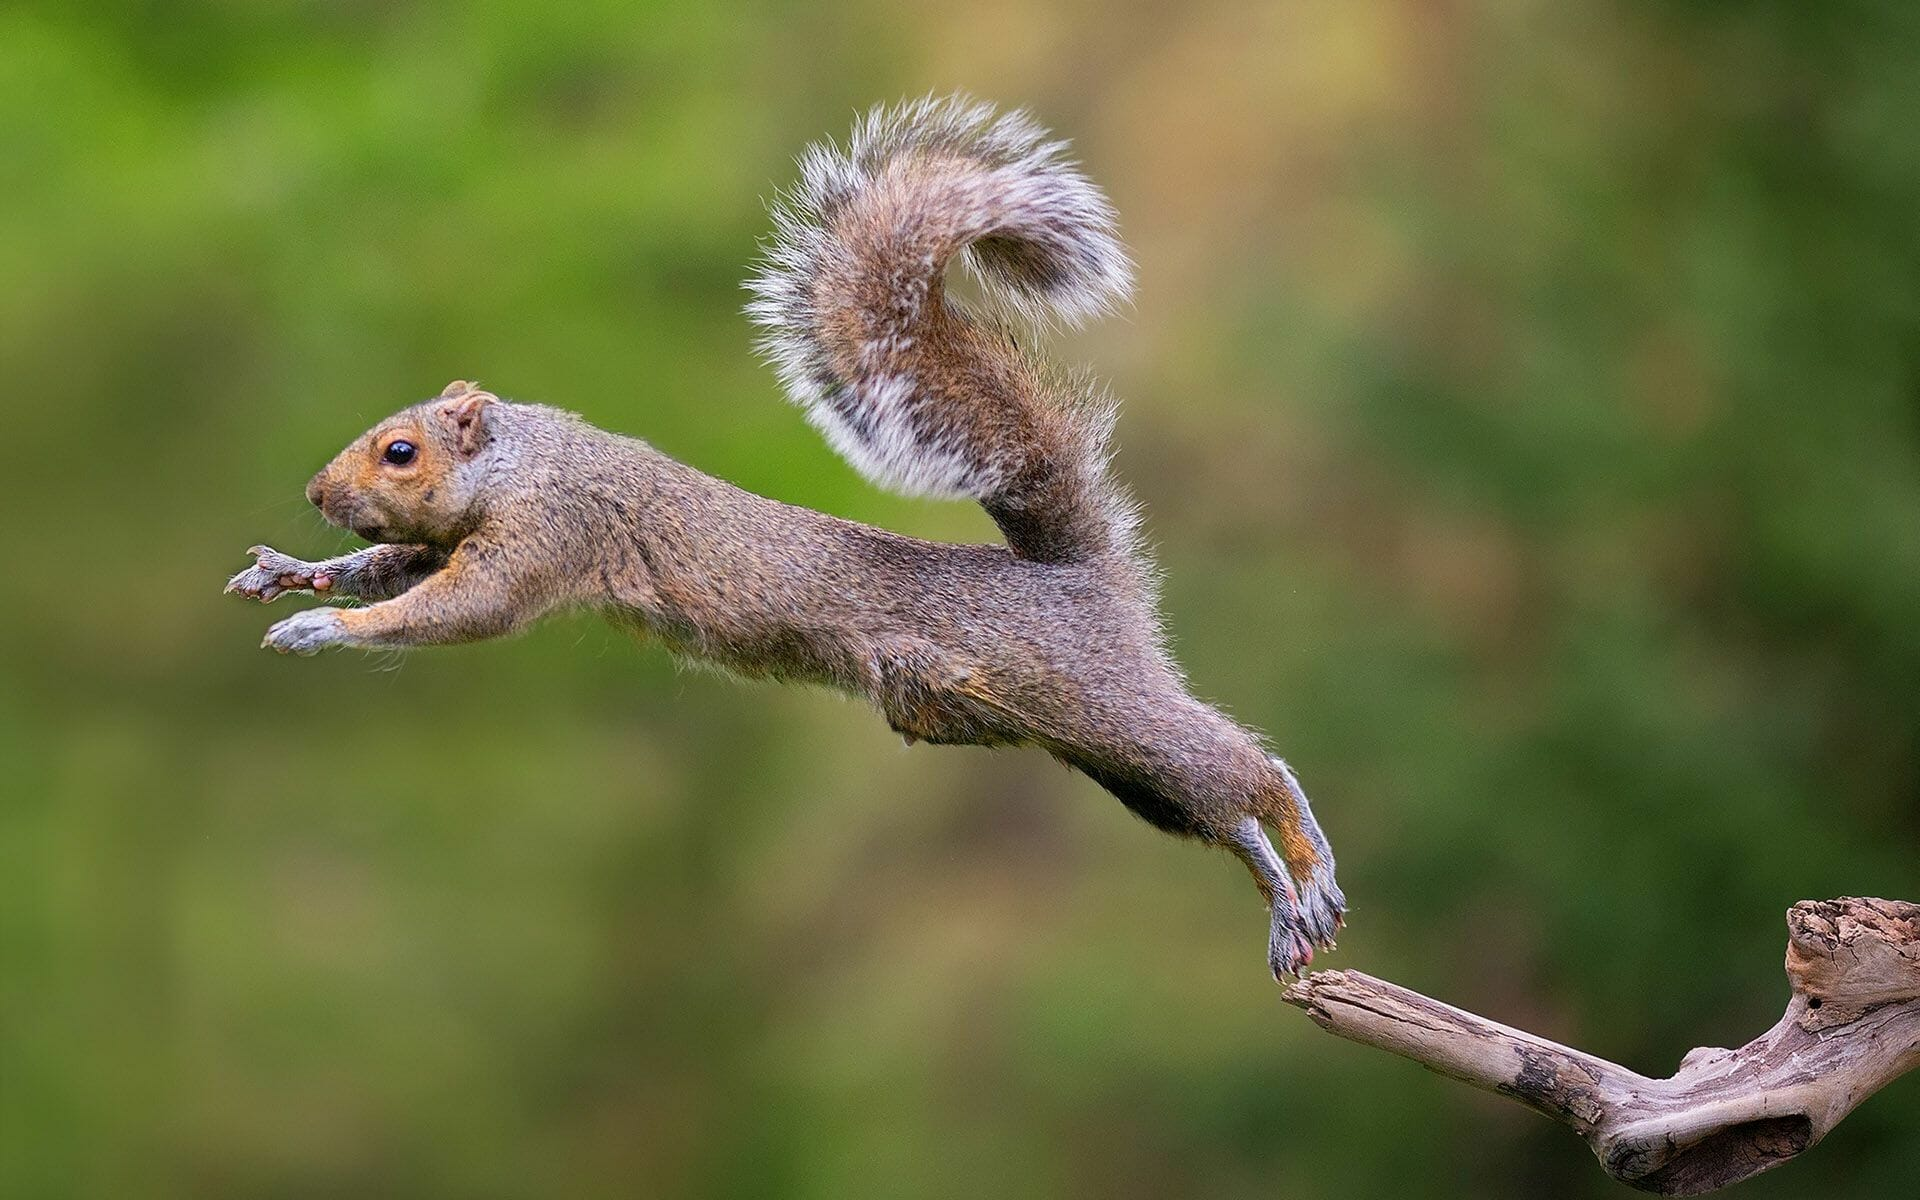 how far can a squirrel jump